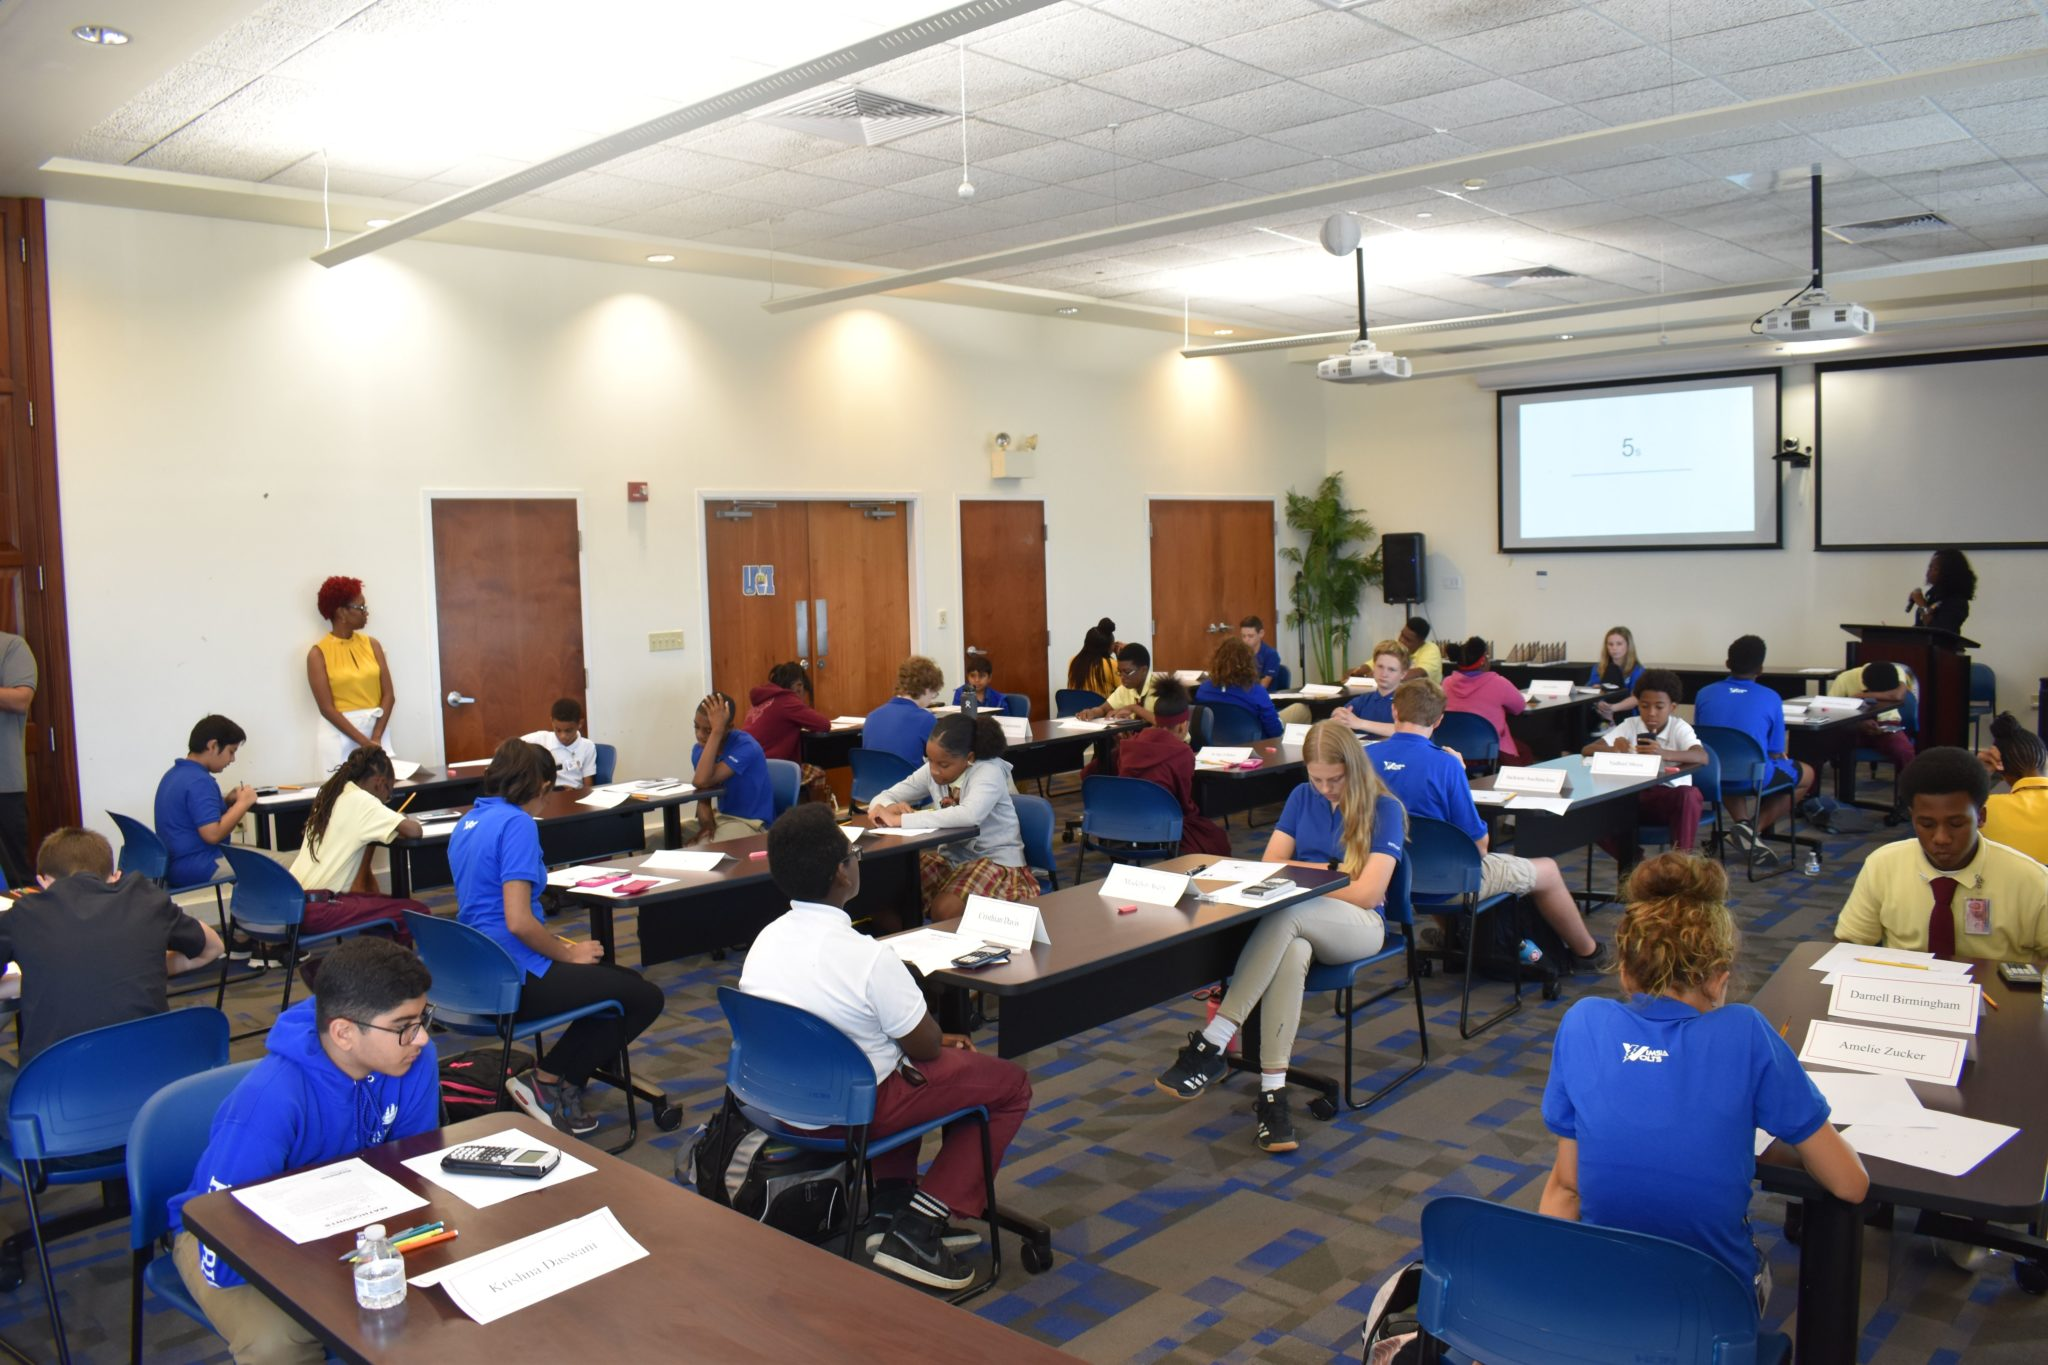 The UVI Sports and Fitness Center was packed with students Thursday for the annual St. Thomas-St. John District MATHCOUNTS competition.